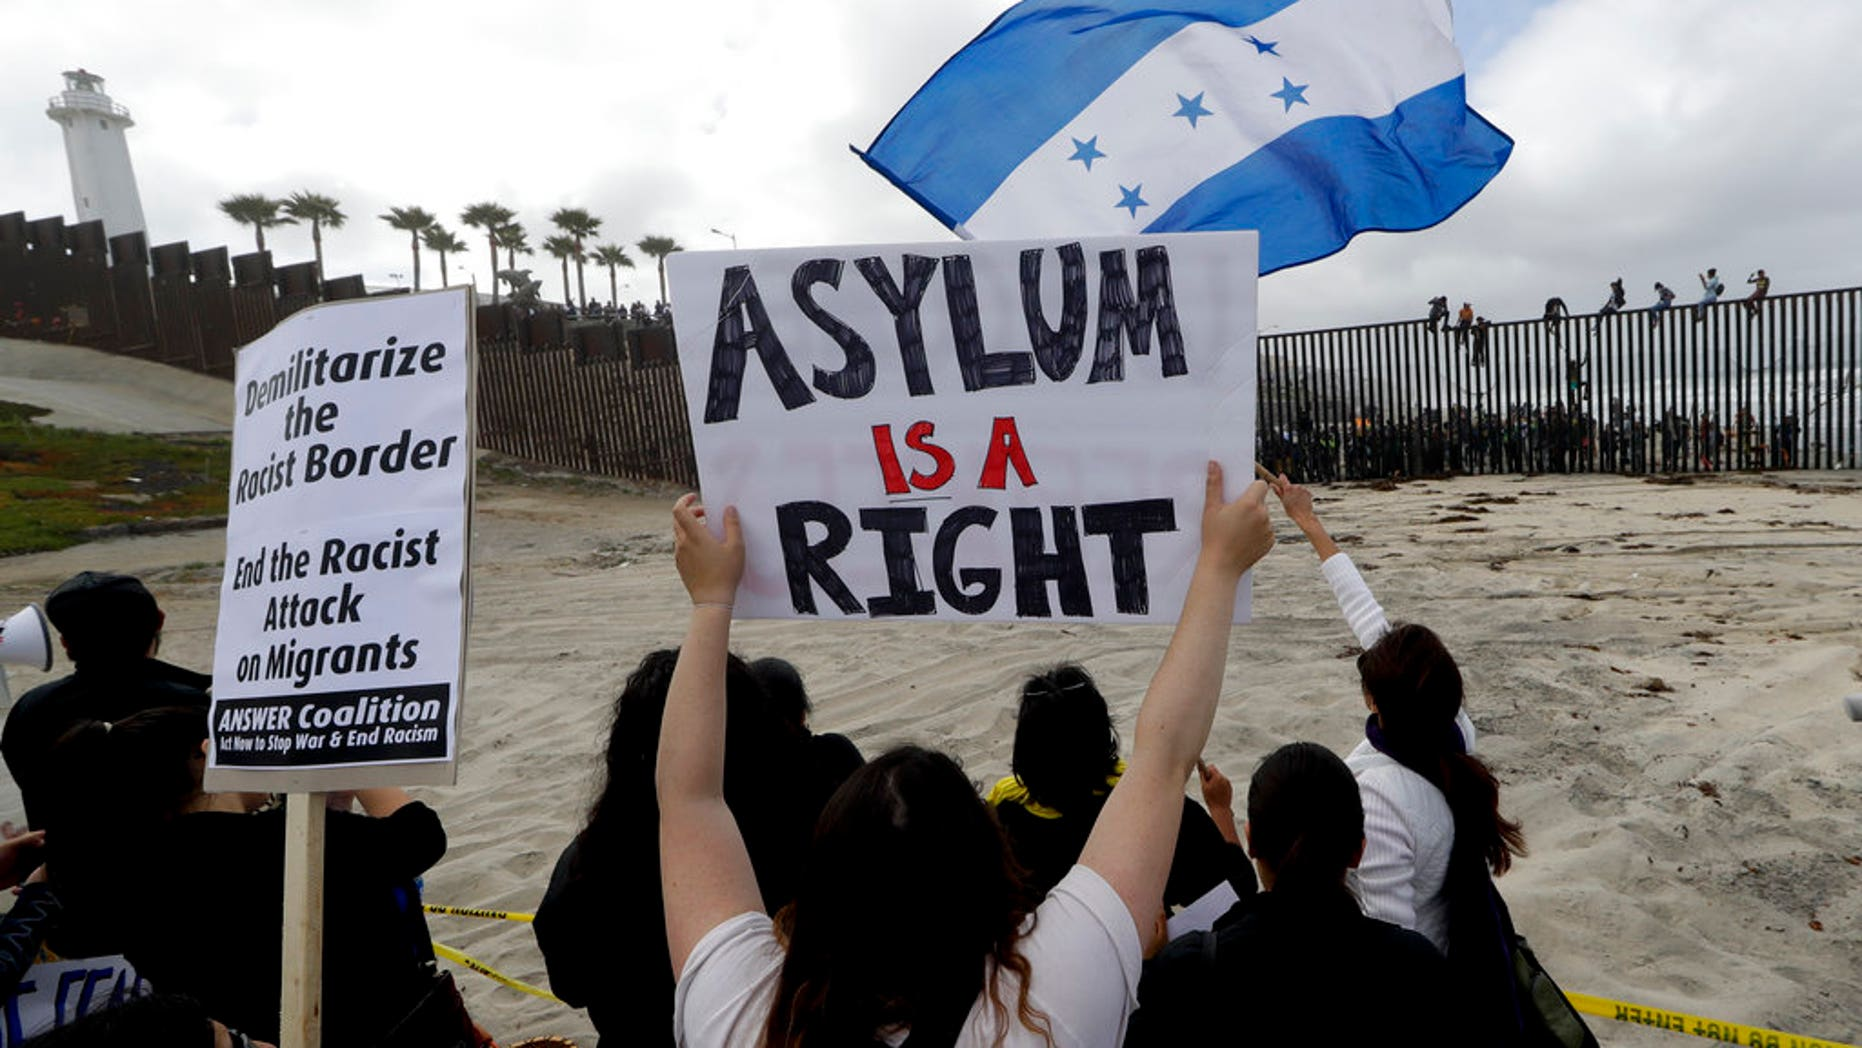 Hundreds of caravan members are reportedly seeking asylum after their arrival at the border.